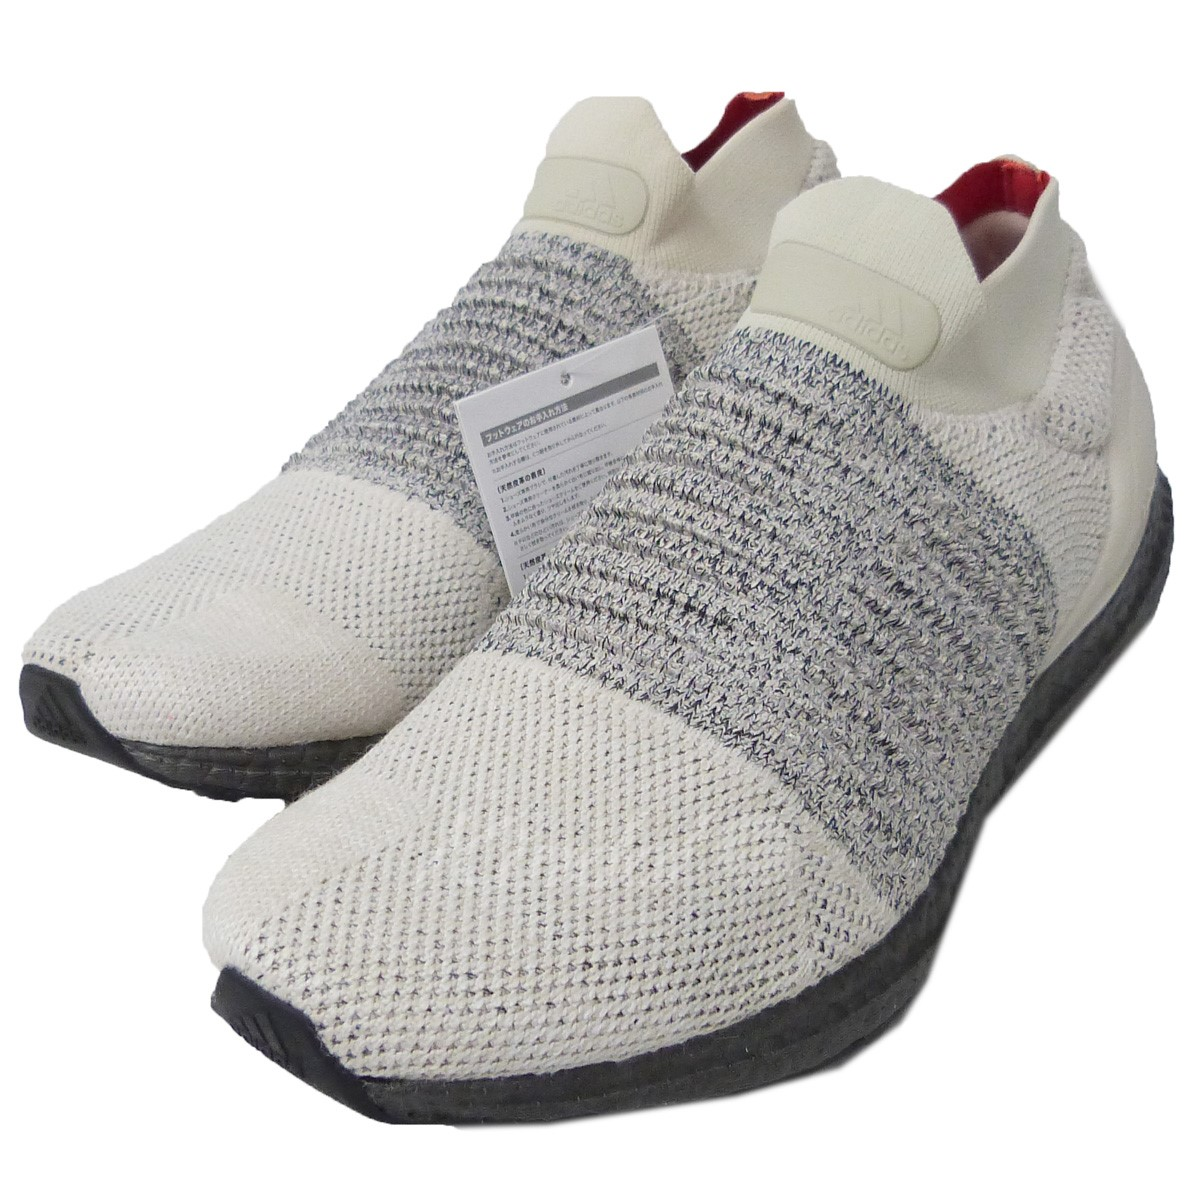 【中古】adidas originals CM8263「ultra boost laceless」スニーカー 【送料無料】 【165327】 【KIND1551】